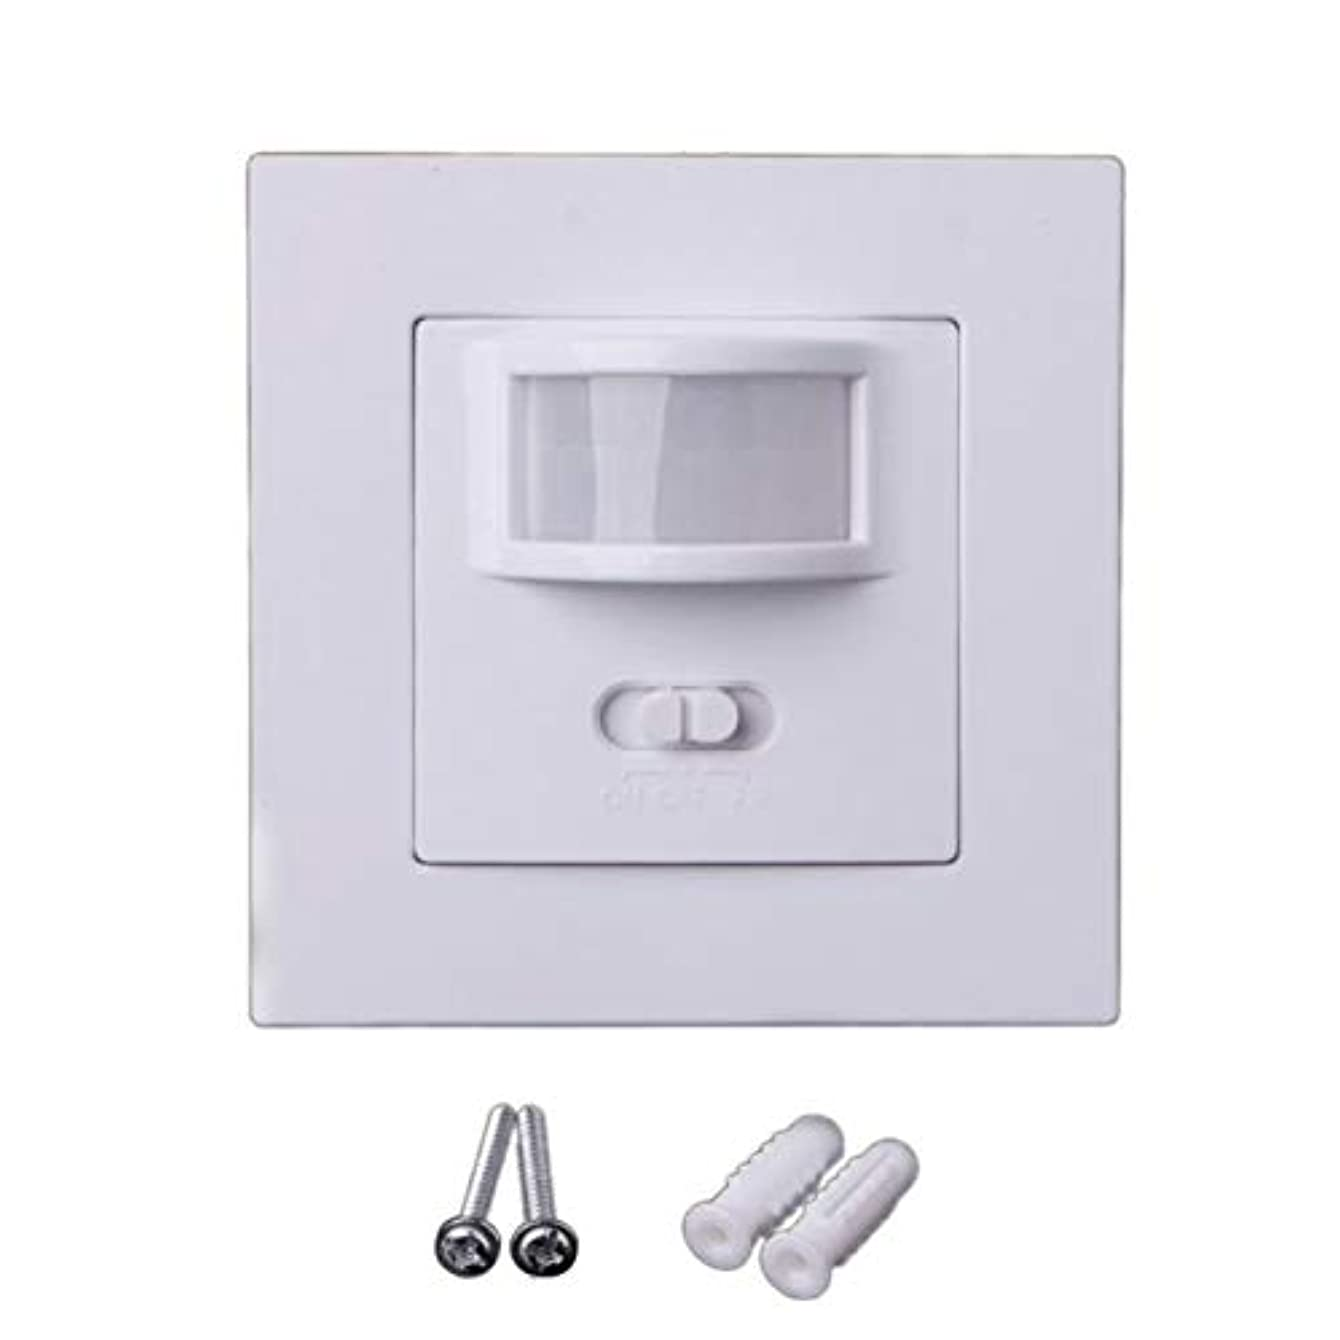 Motion Switch - Motion Sensor Light 110v 240v Switch Square Power Intelligence Human Body Infrared - Night Rechargable Stair Porch Counter Stairway Cord Power Alert Ceiling Mounting Bell Zo